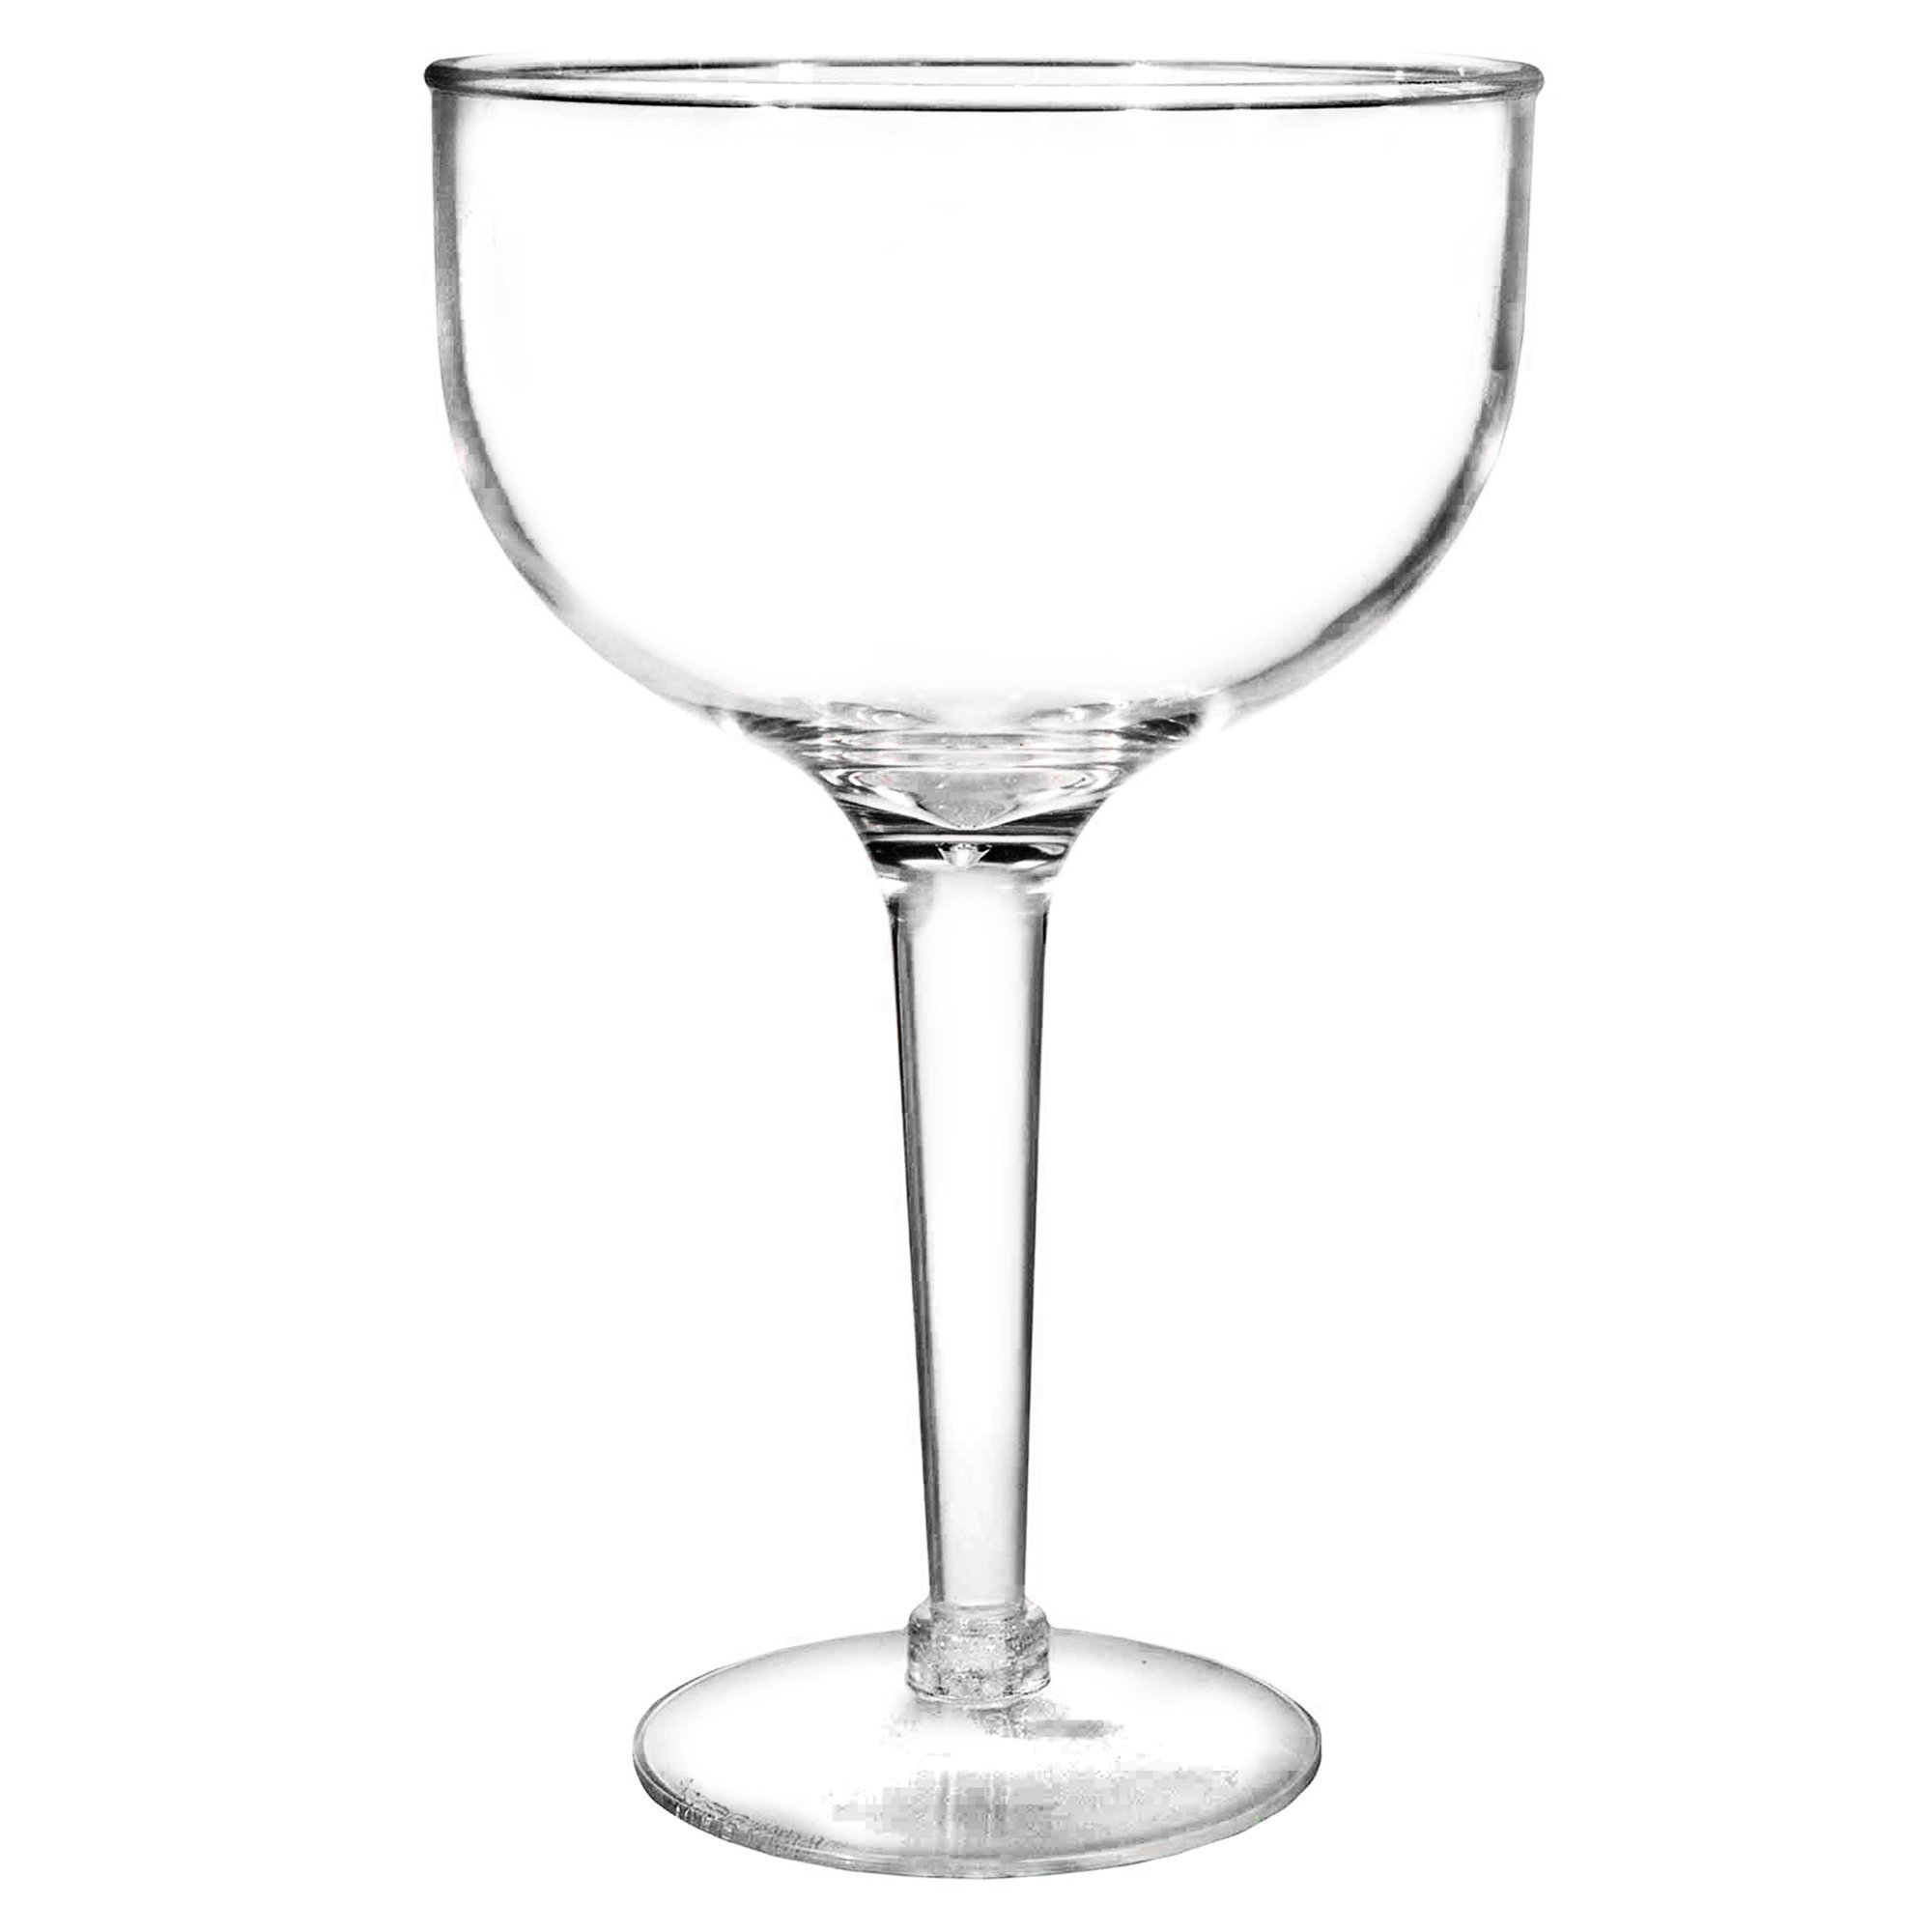 Tooters Plastic Super Margarita Glass, 42 oz. by Tooters